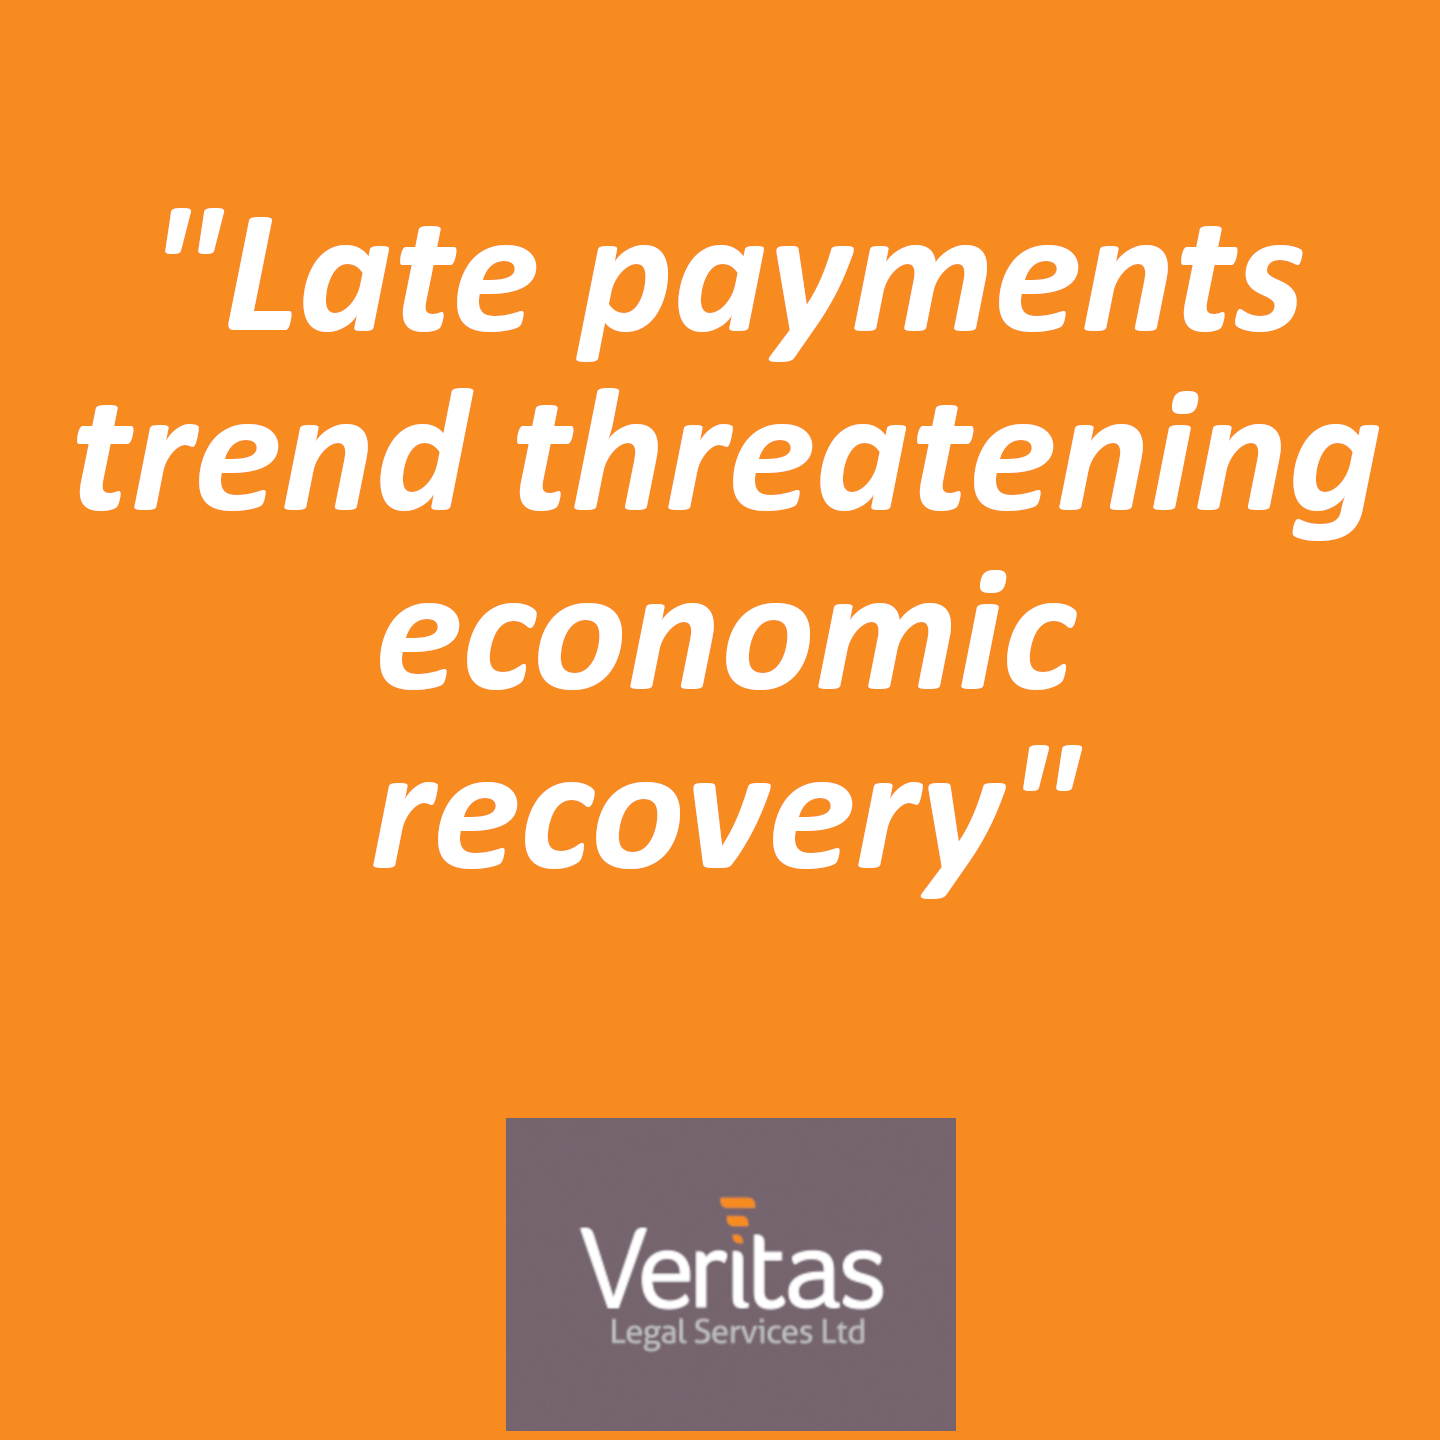 Late payments trend threatening economic recovery